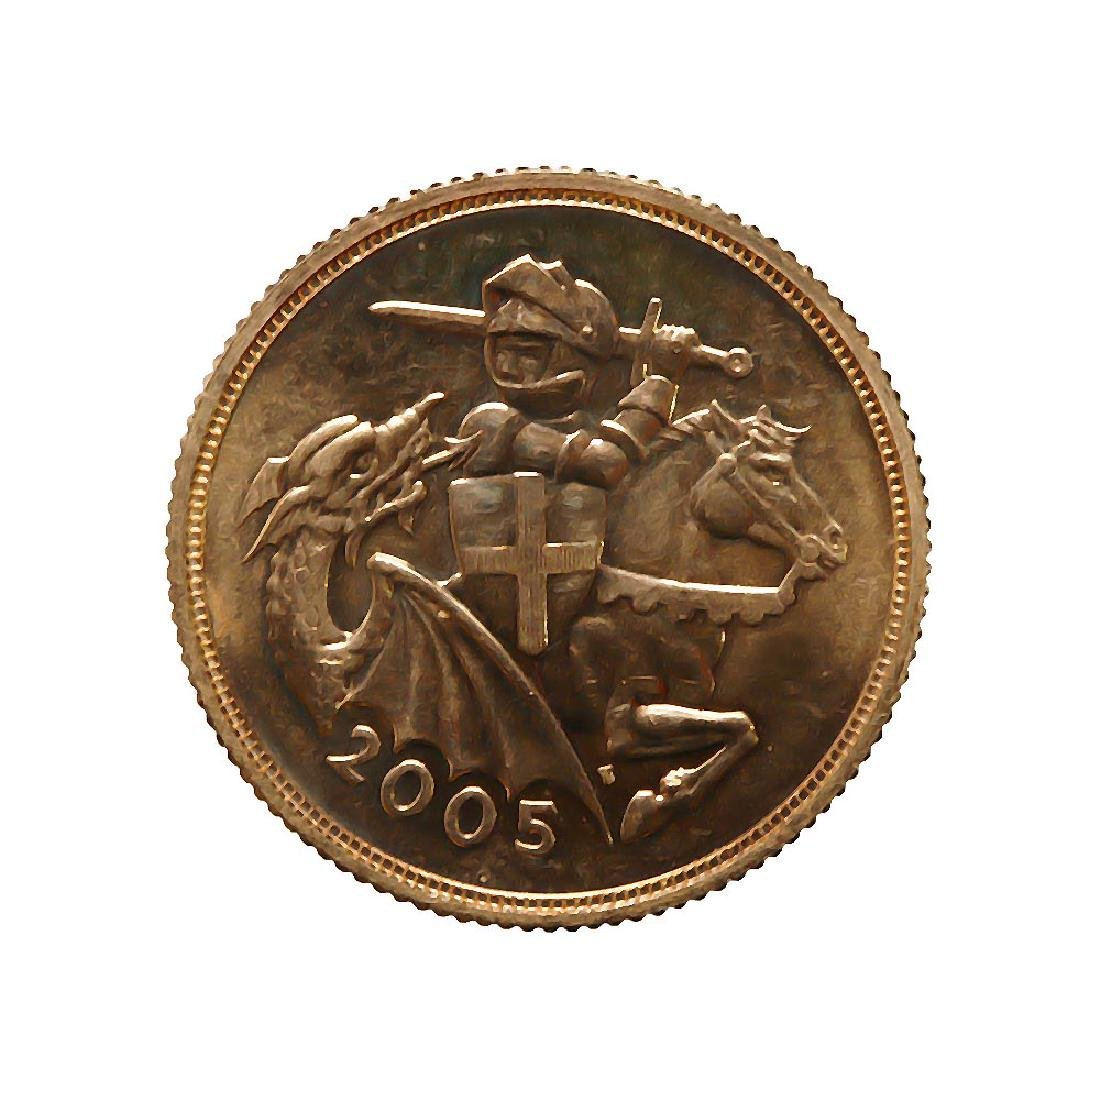 Great Britain Gold Sovereign 2005 PF